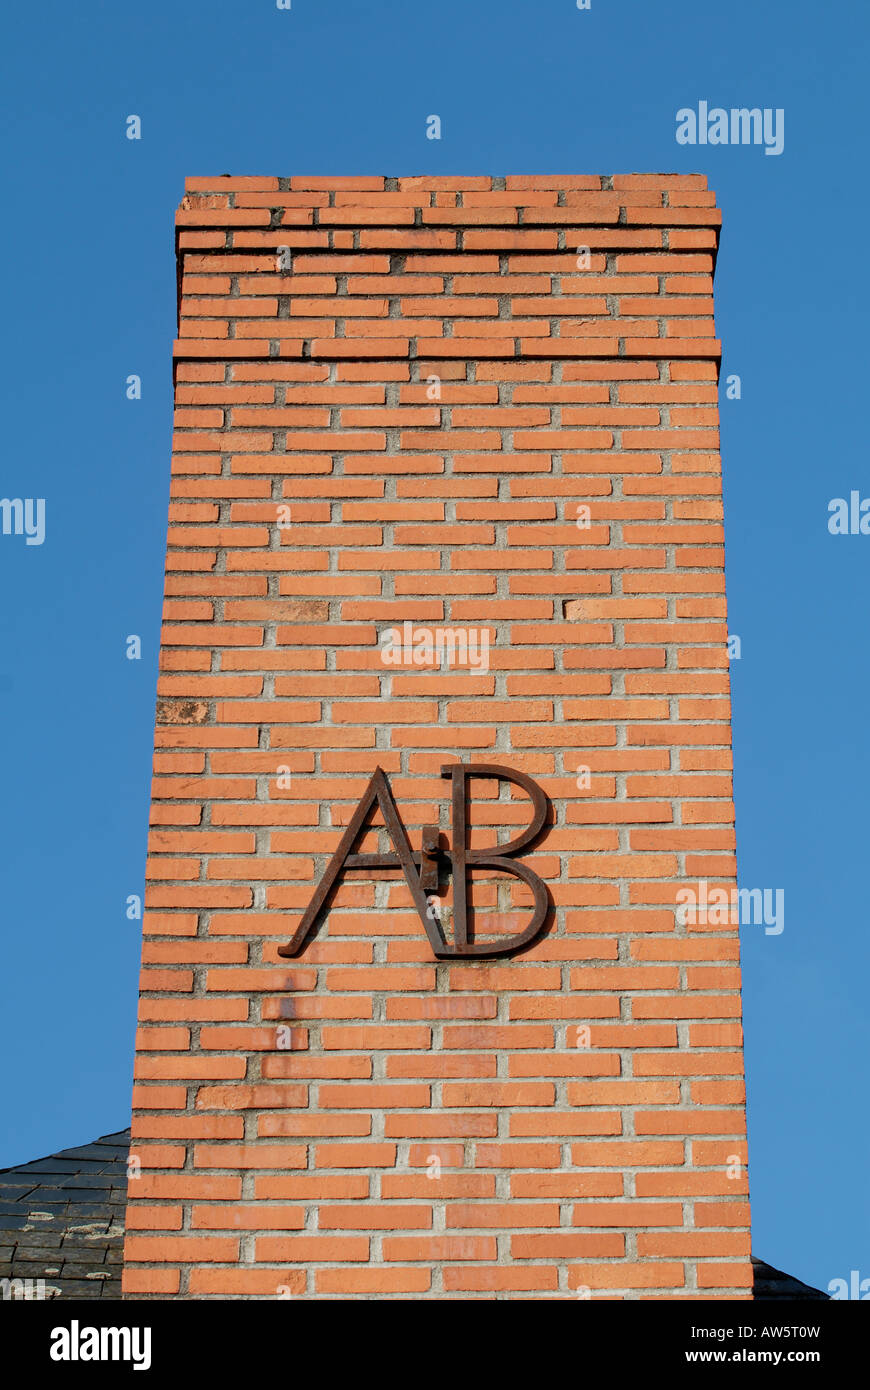 'AB' letters decorating chimney stack, France. - Stock Image